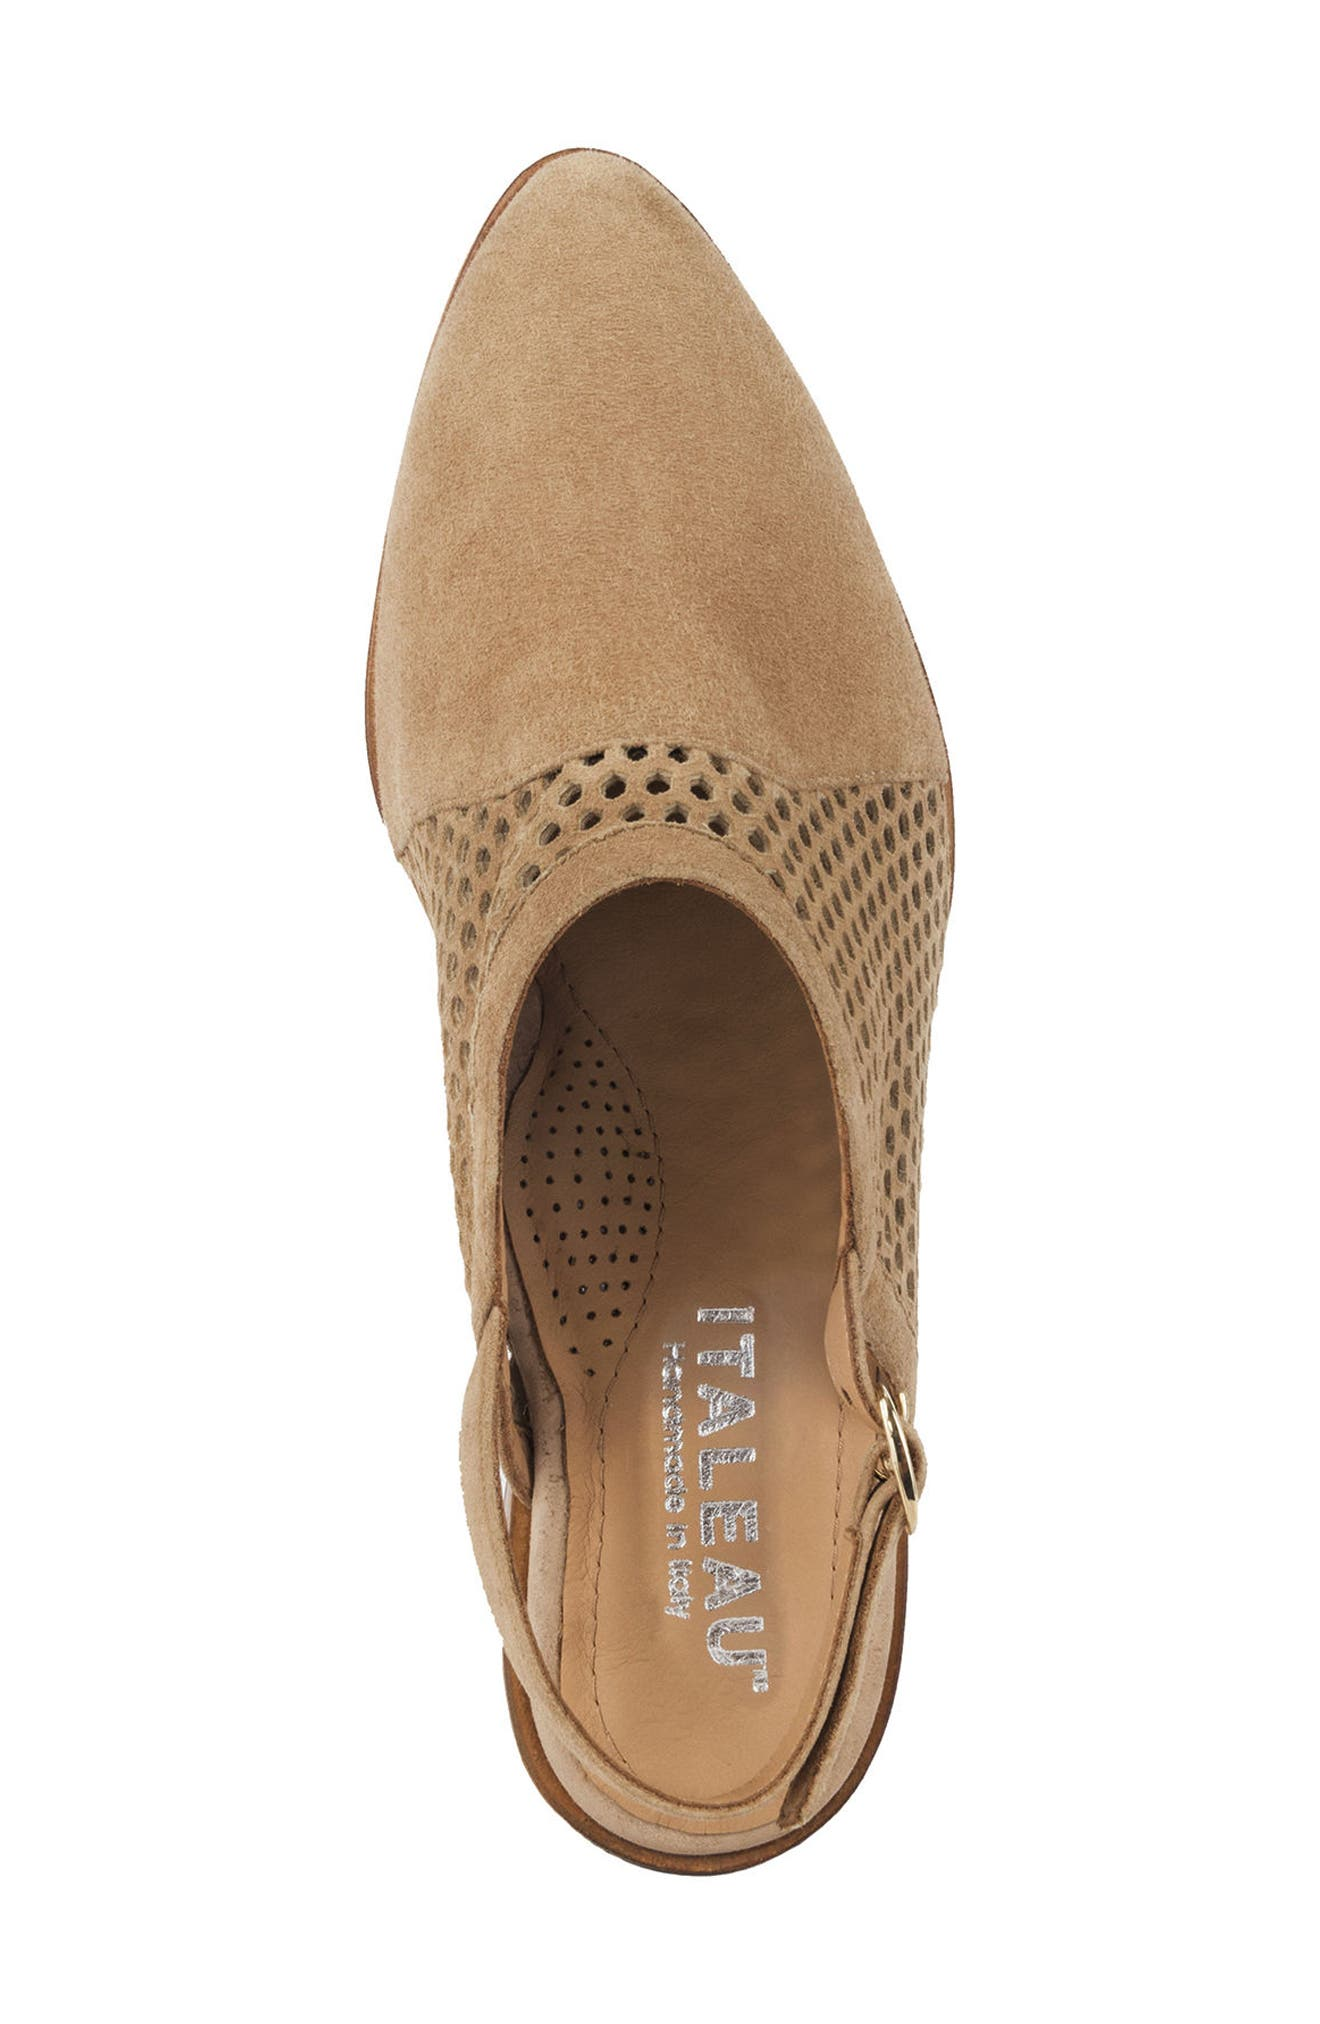 Toselli Water Resistant Slingback Bootie,                             Alternate thumbnail 5, color,                             Sand